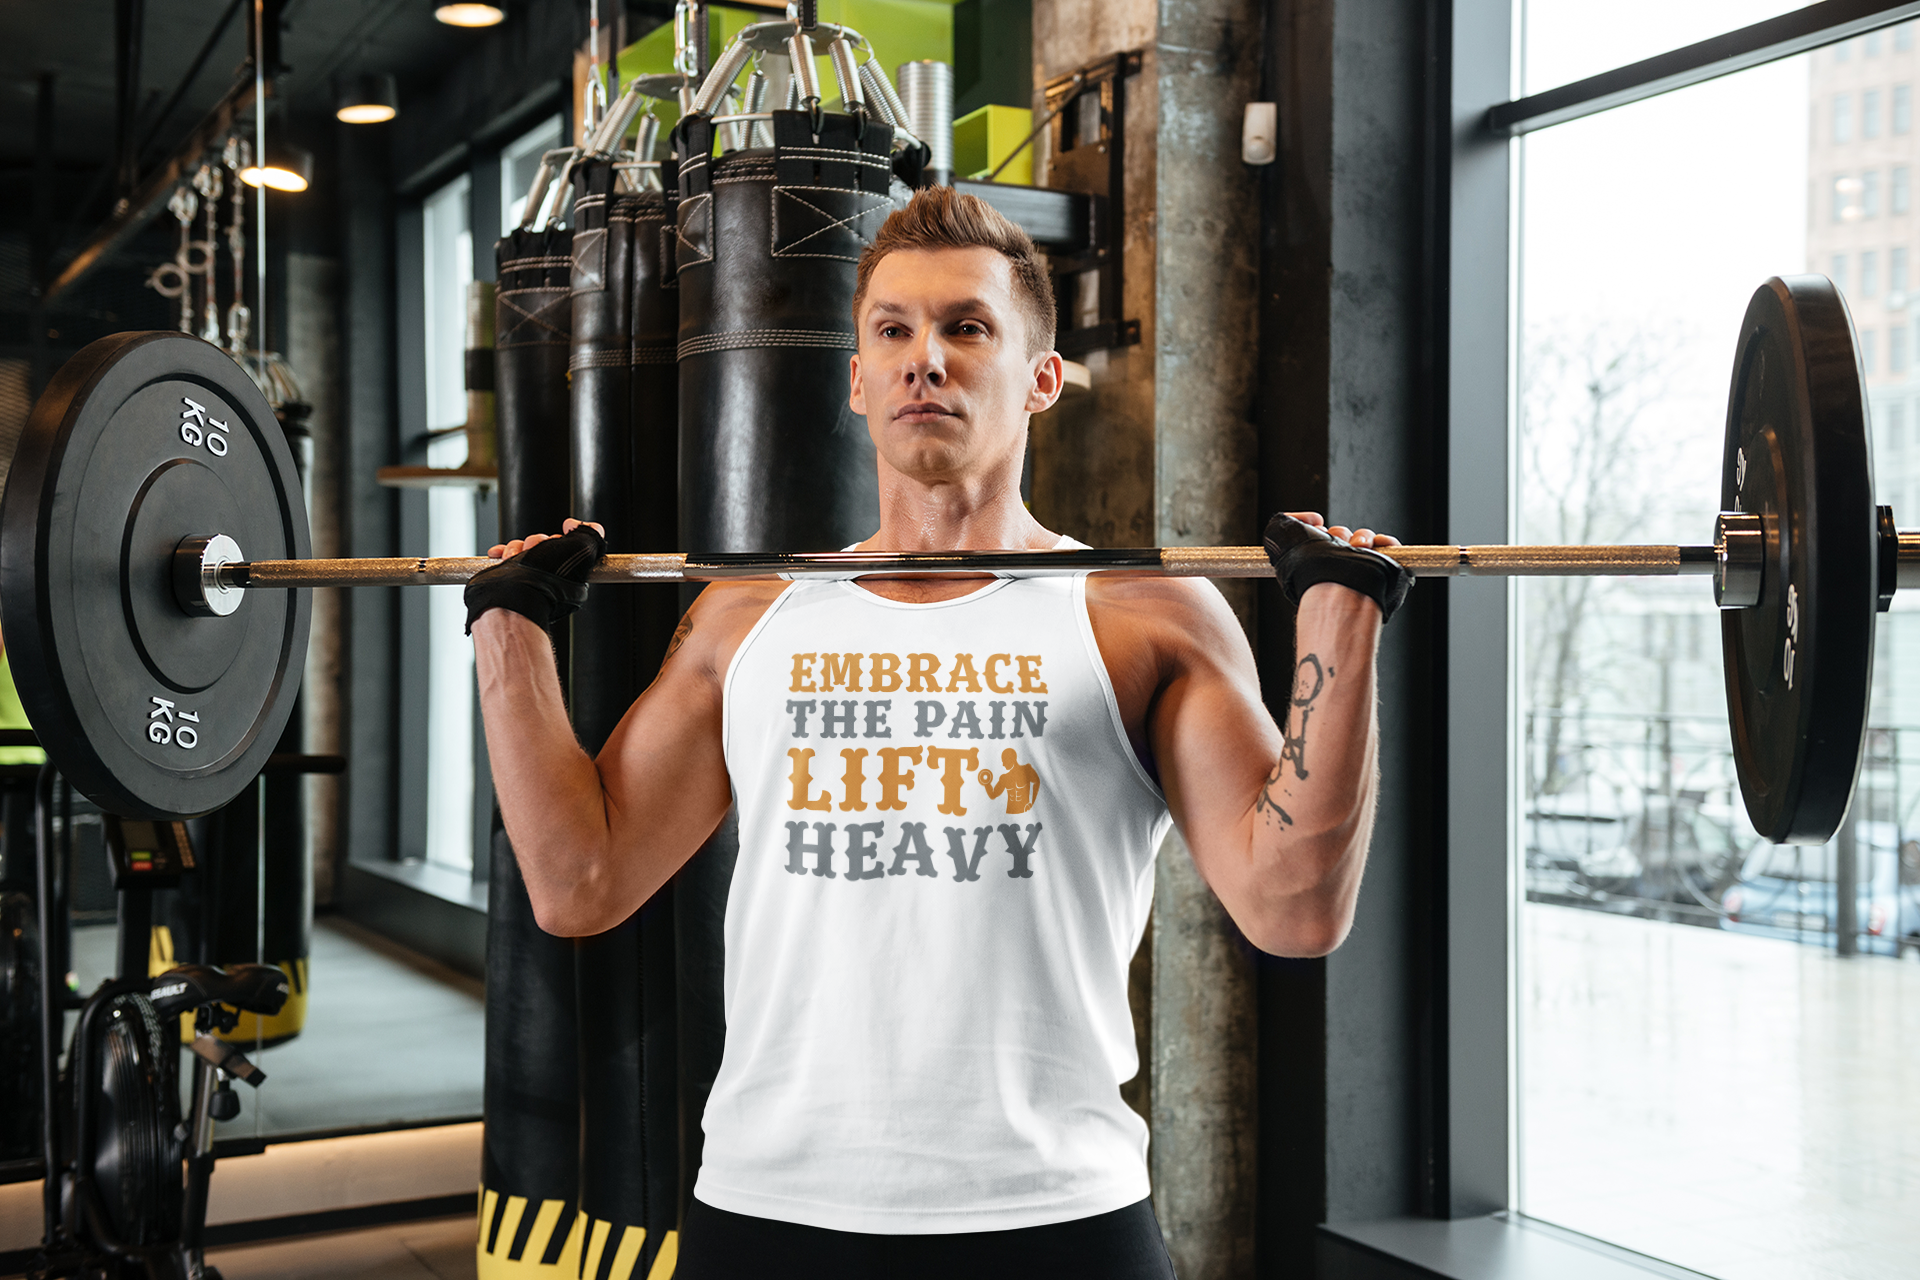 Embrace the pain lift heavy - Tank Tops - GN - fitness, cross fit, weightlifting, funny quotes, funny sayings, funny t-shirts